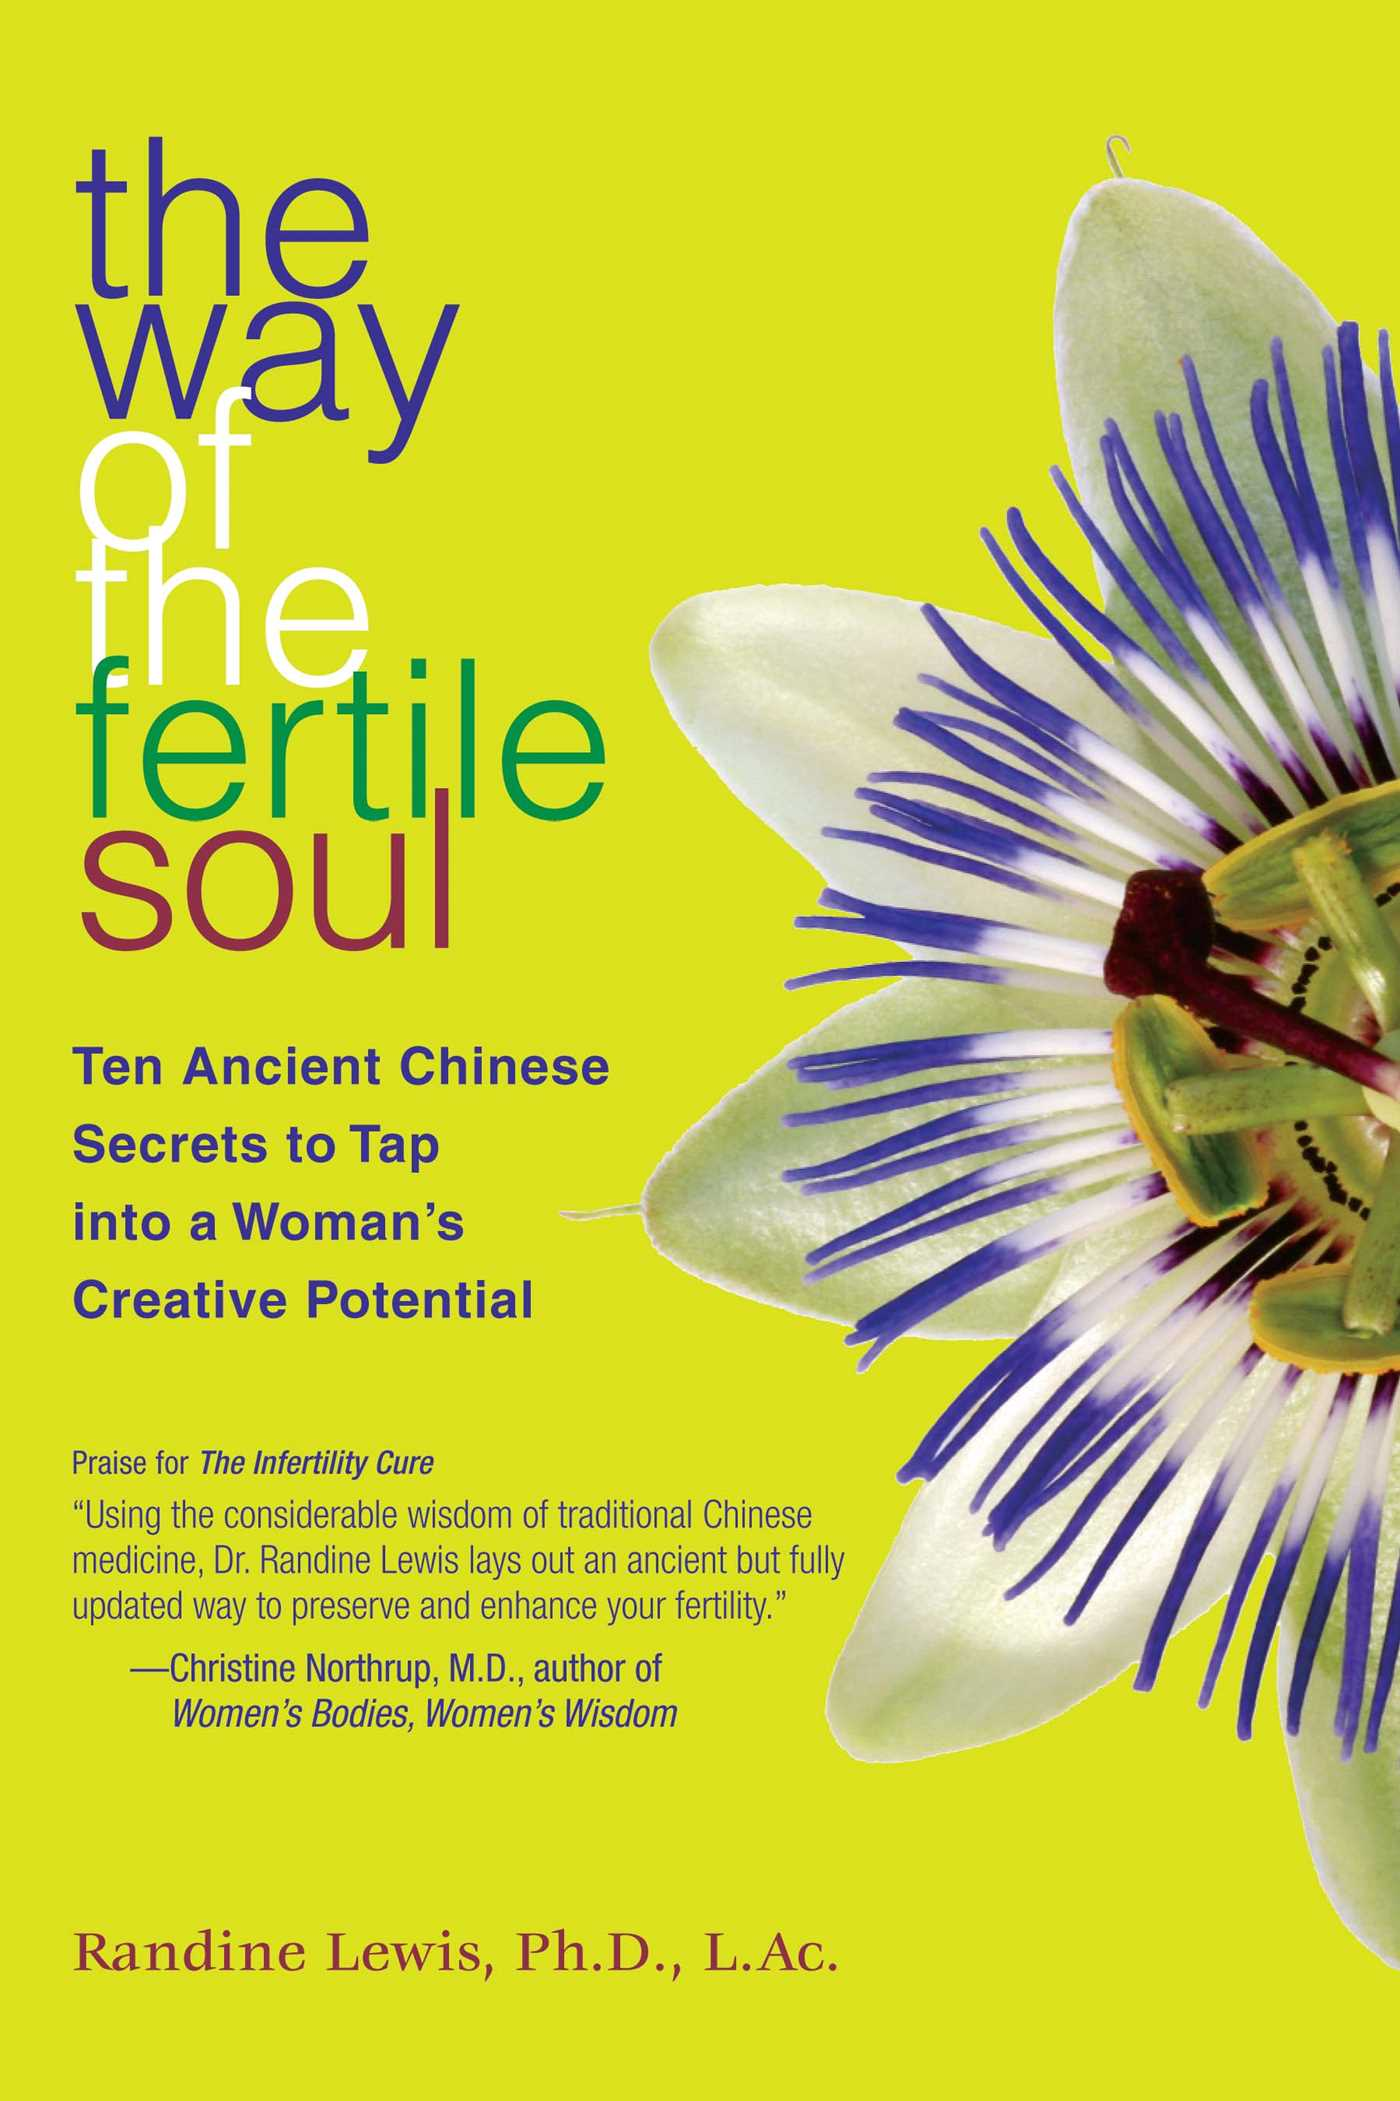 The way of the fertile soul 9781416575610 hr